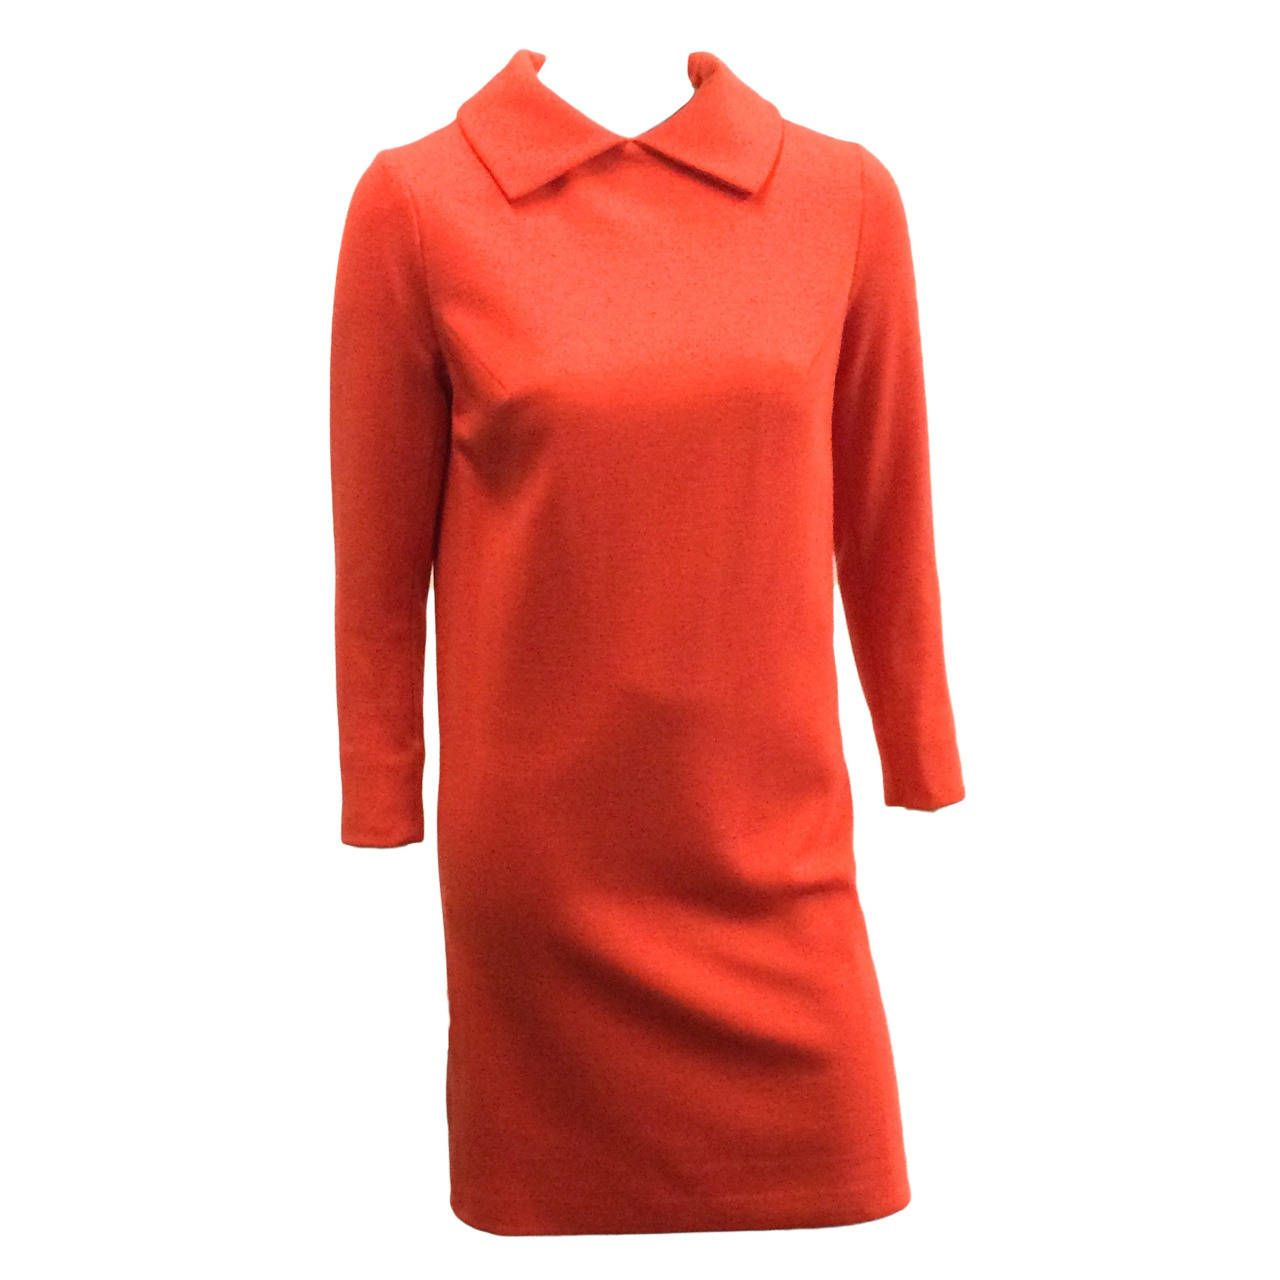 Bill blass for maurice rentner s chemise wool dress from a